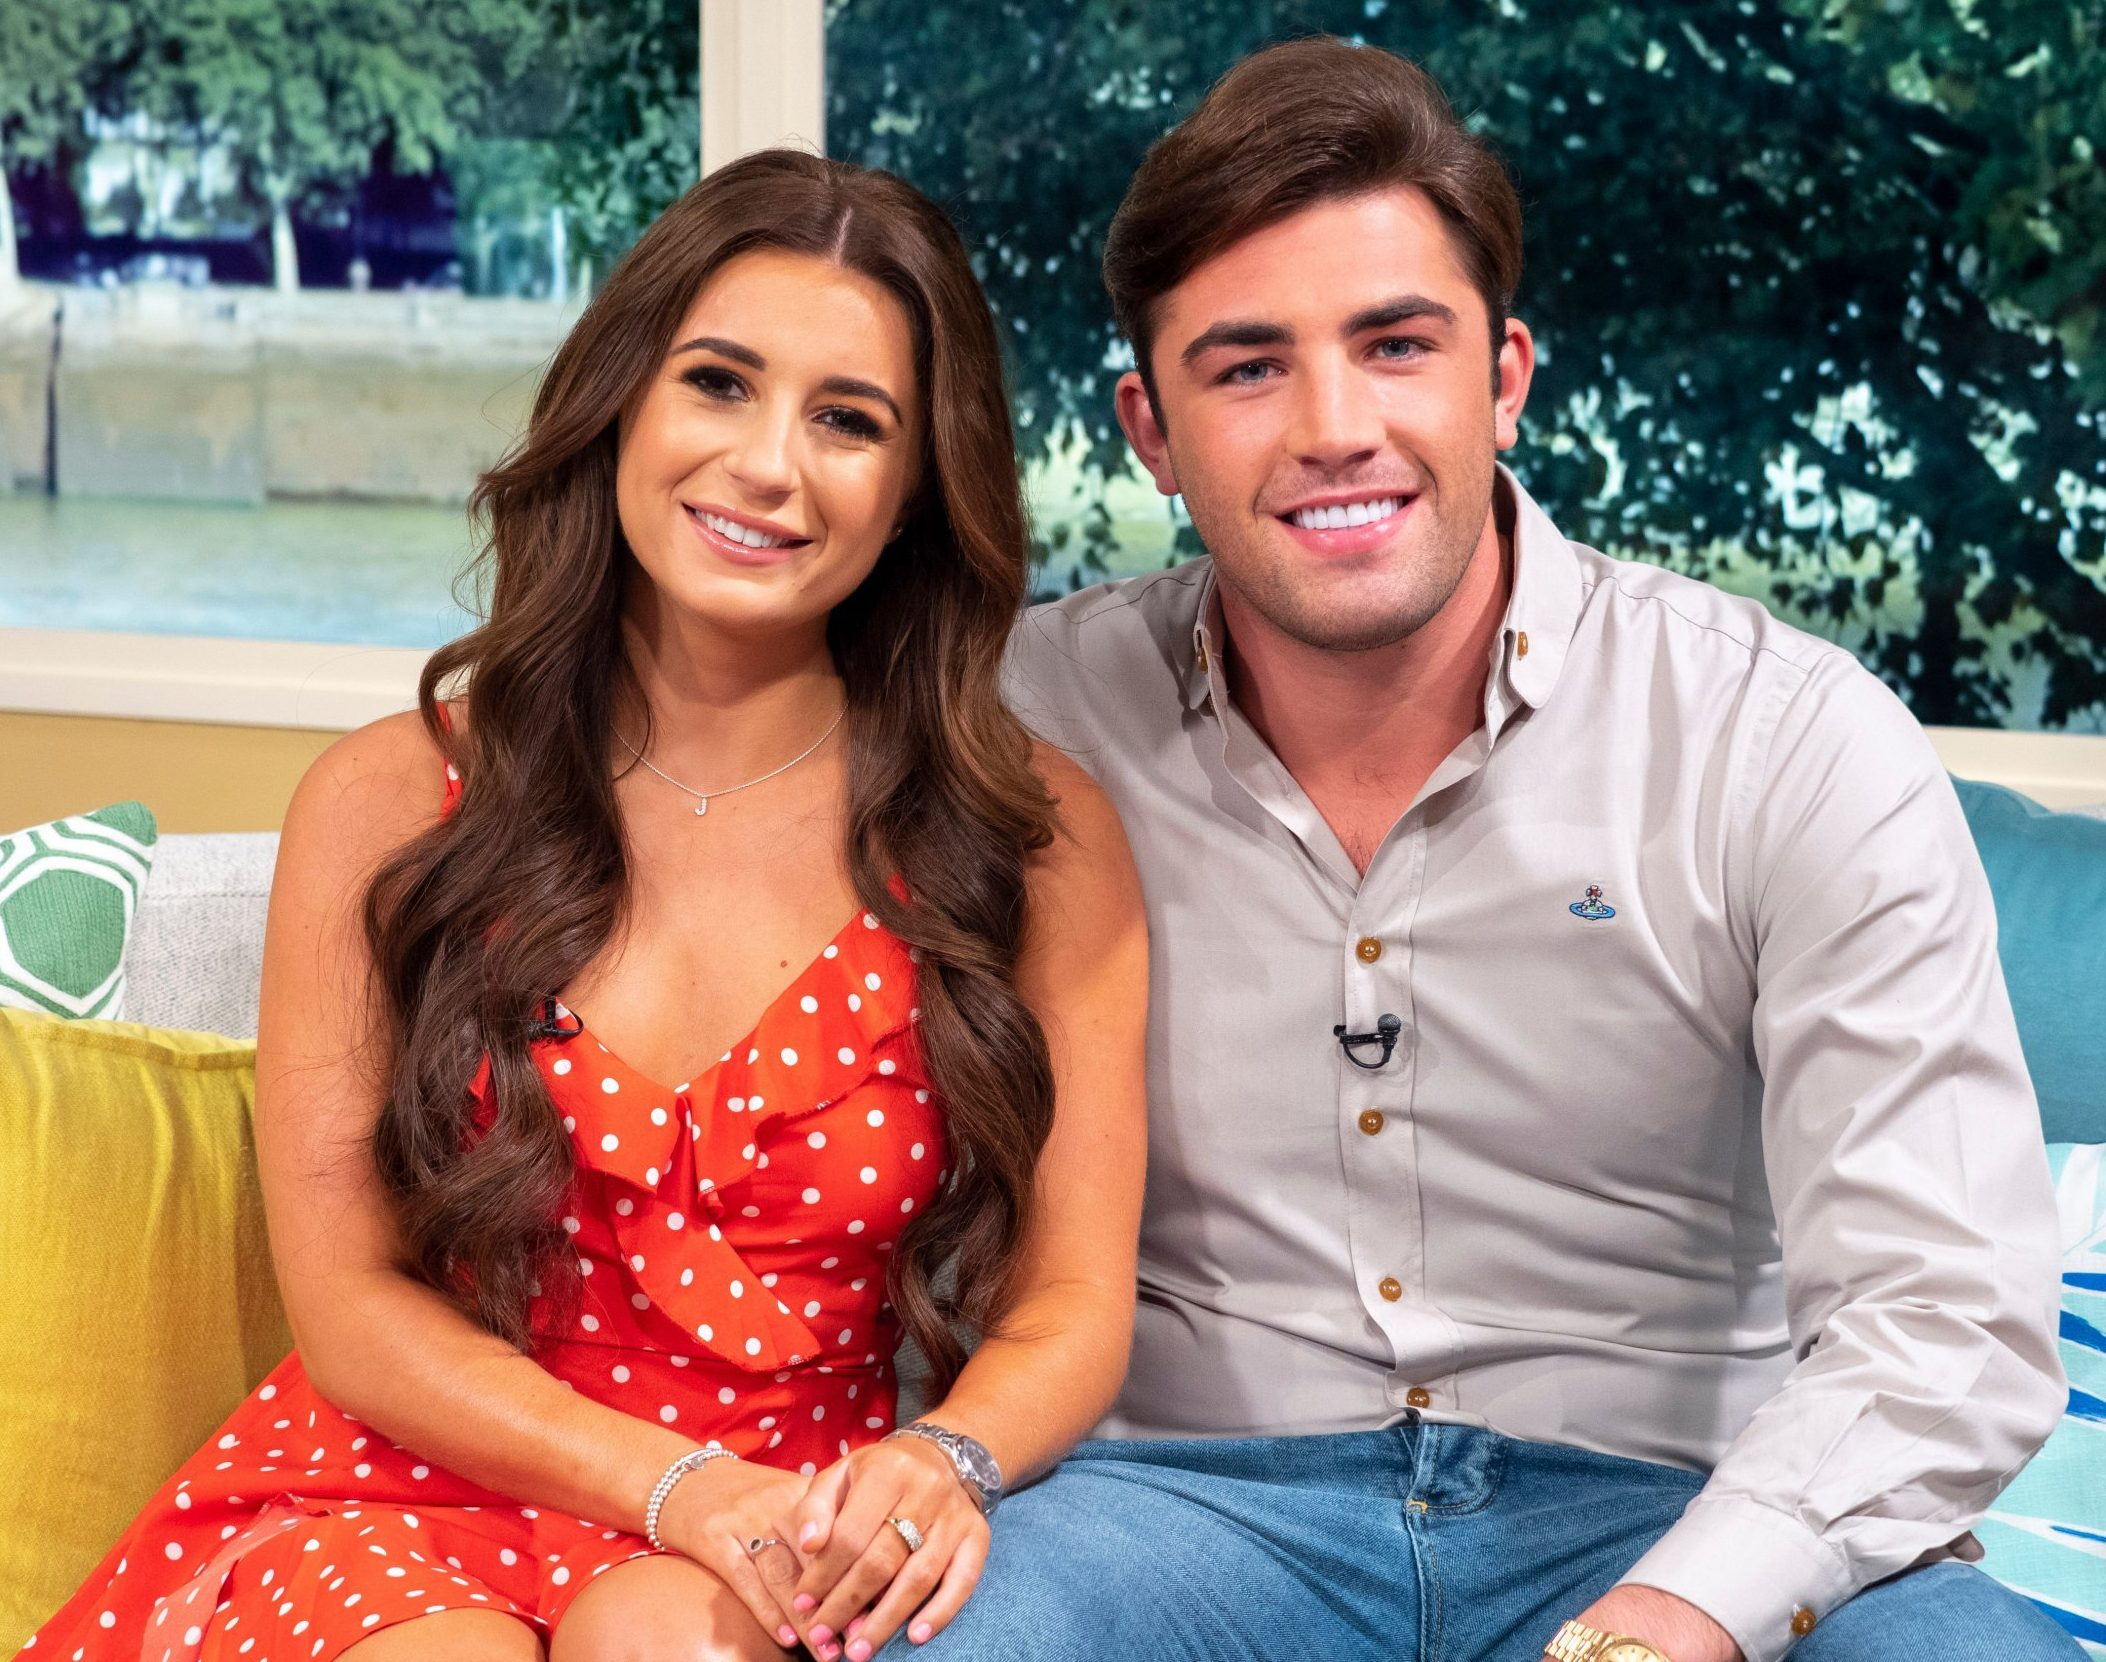 Love Island's Jack Fincham admits he still fancies ex-girlfriend Dani Dyer